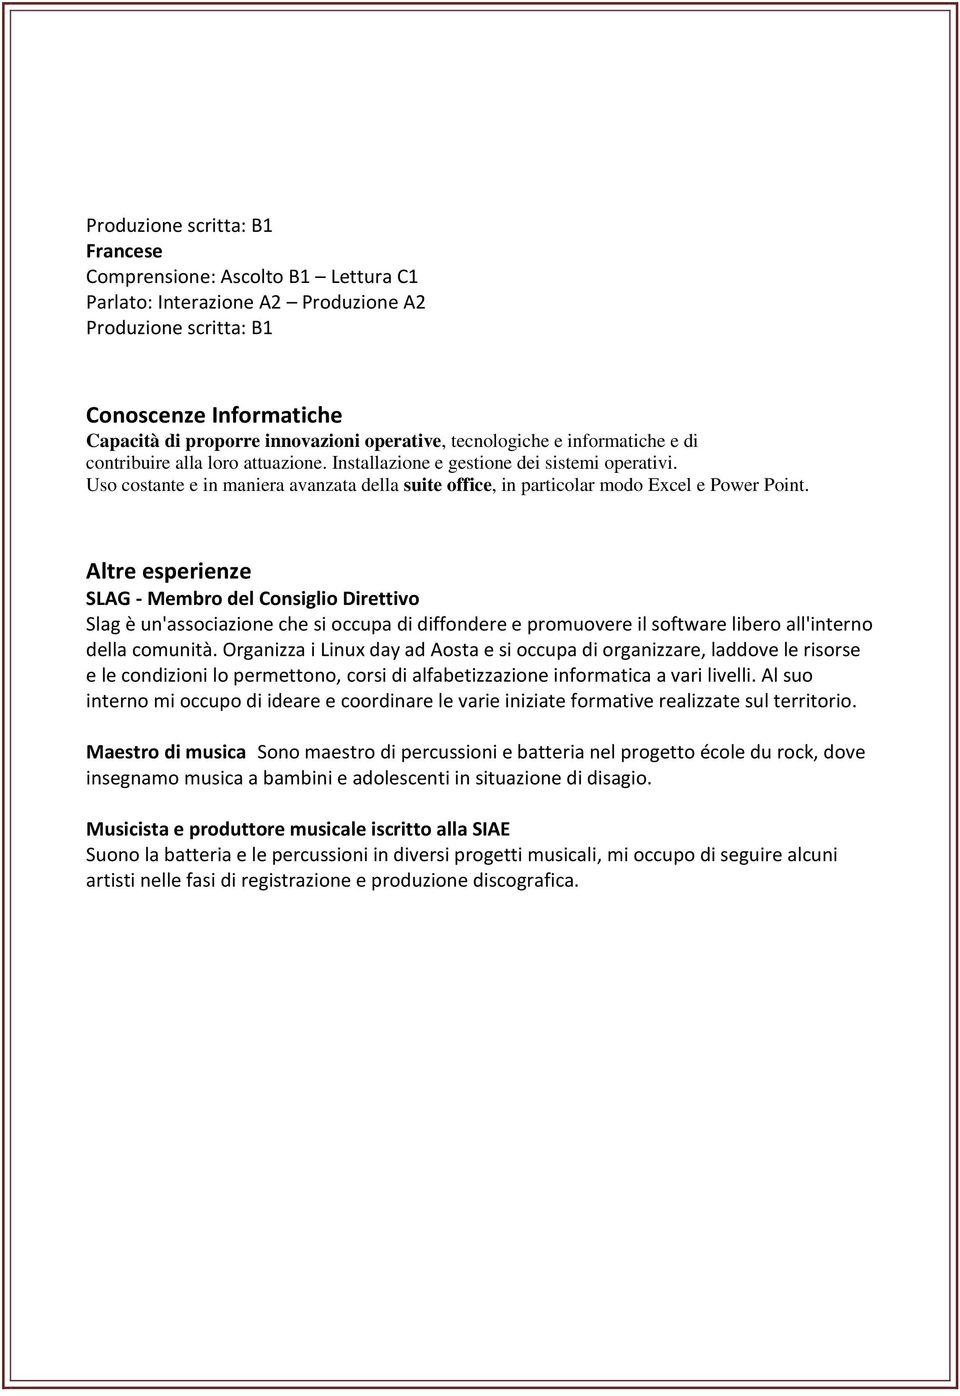 Uso costante e in maniera avanzata della suite office, in particolar modo Excel e Power Point.